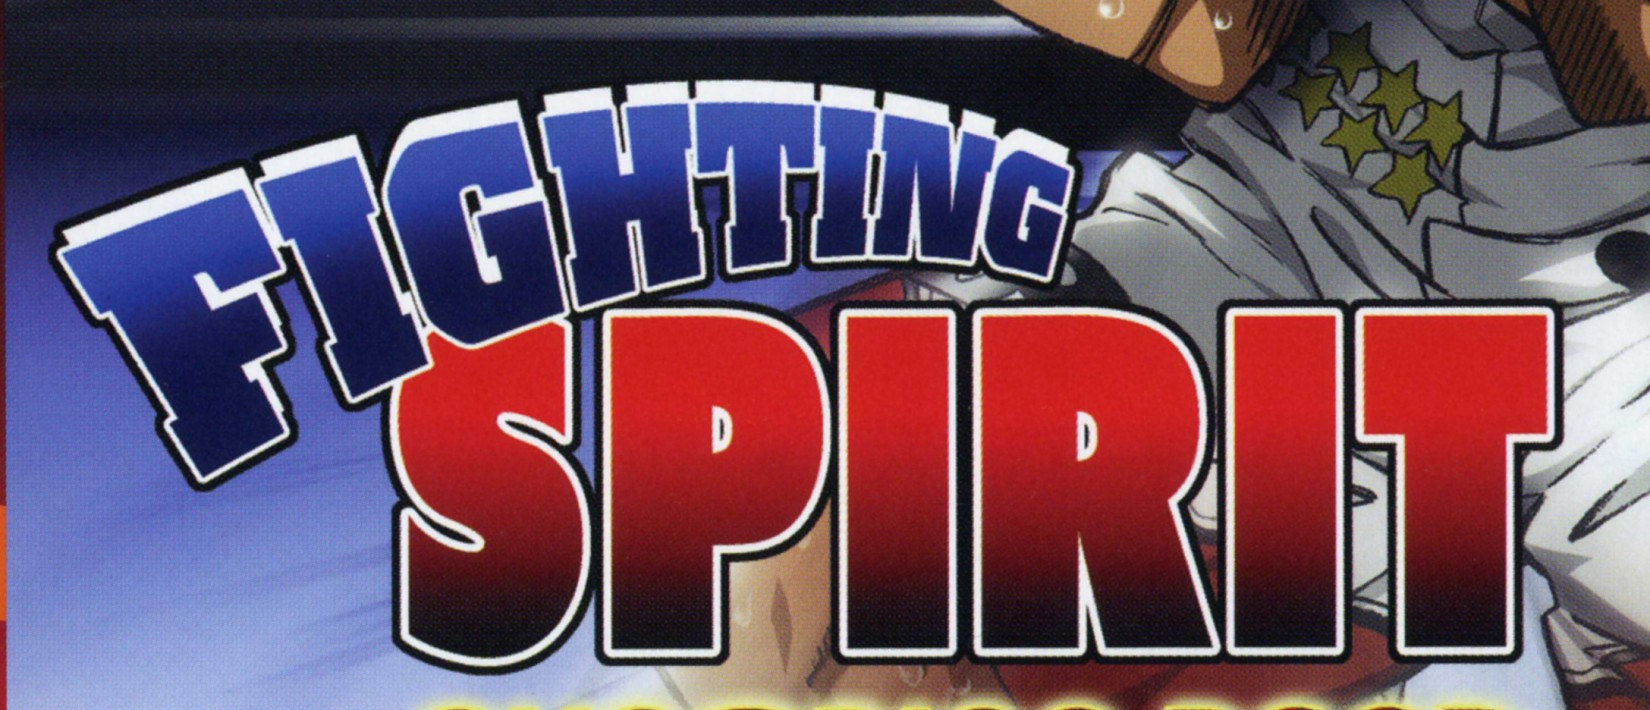 Fighting Spirit Font?